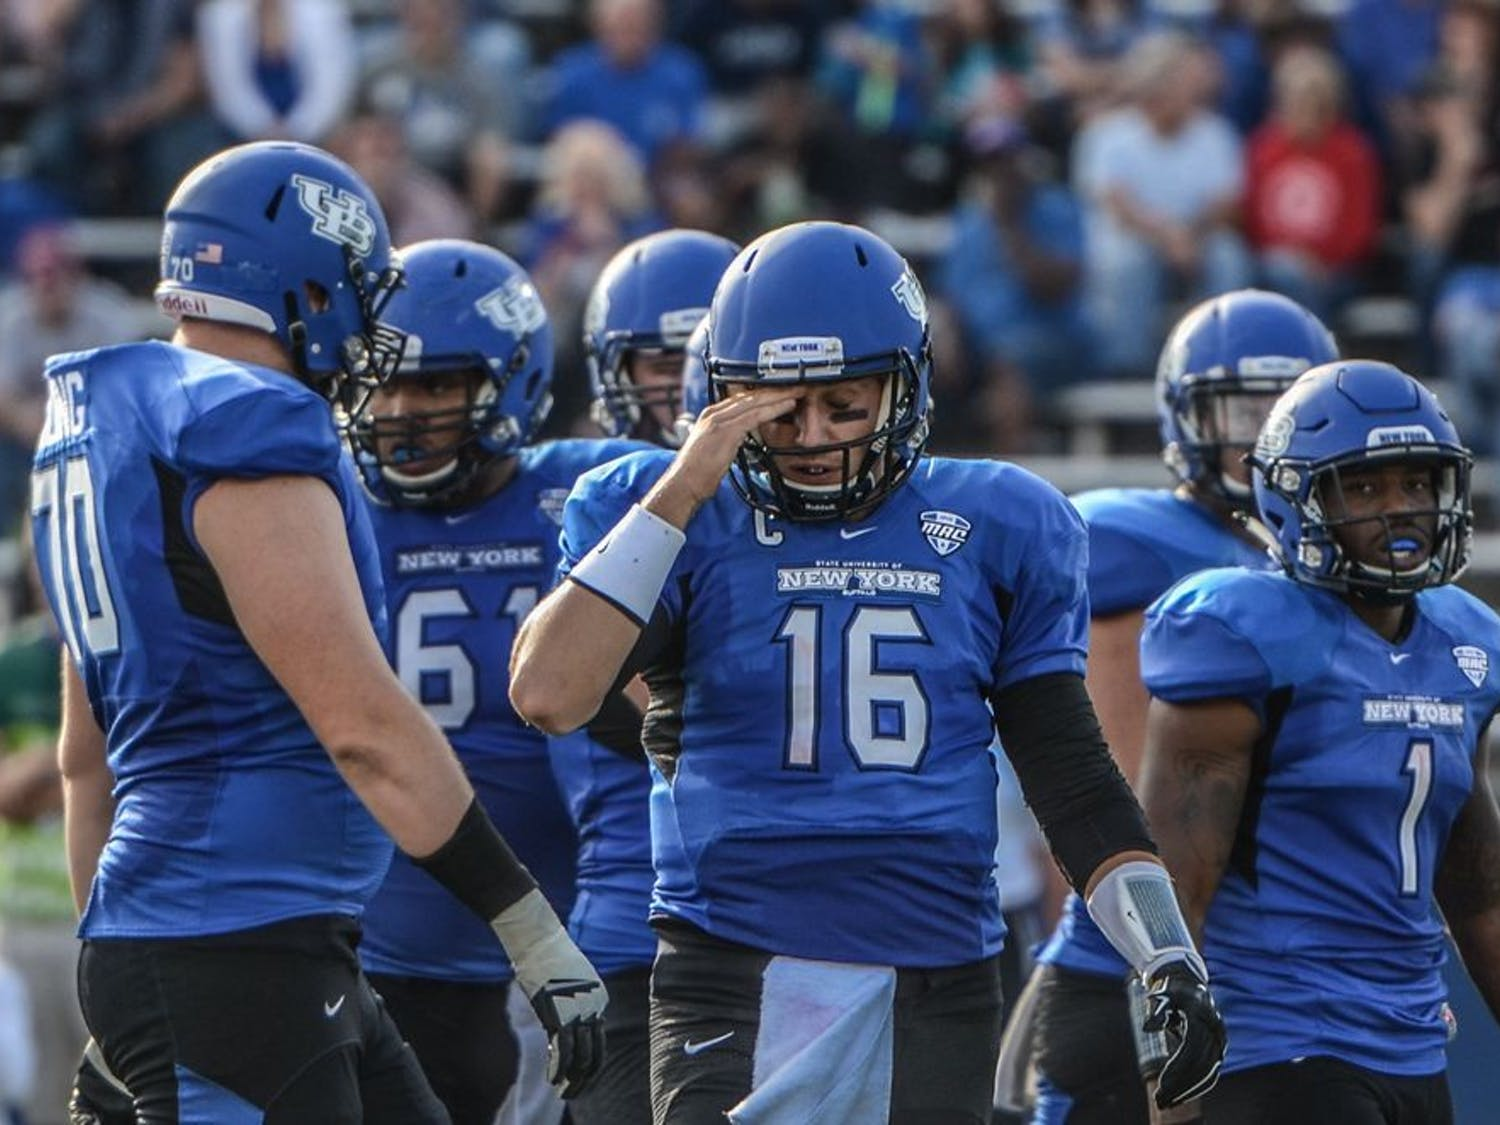 The football team (2-2) lost 24-21 to Nevada (2-2) at UB Stadium on Saturday. It was Buffalo's final game before Mid-American Conference play begins.